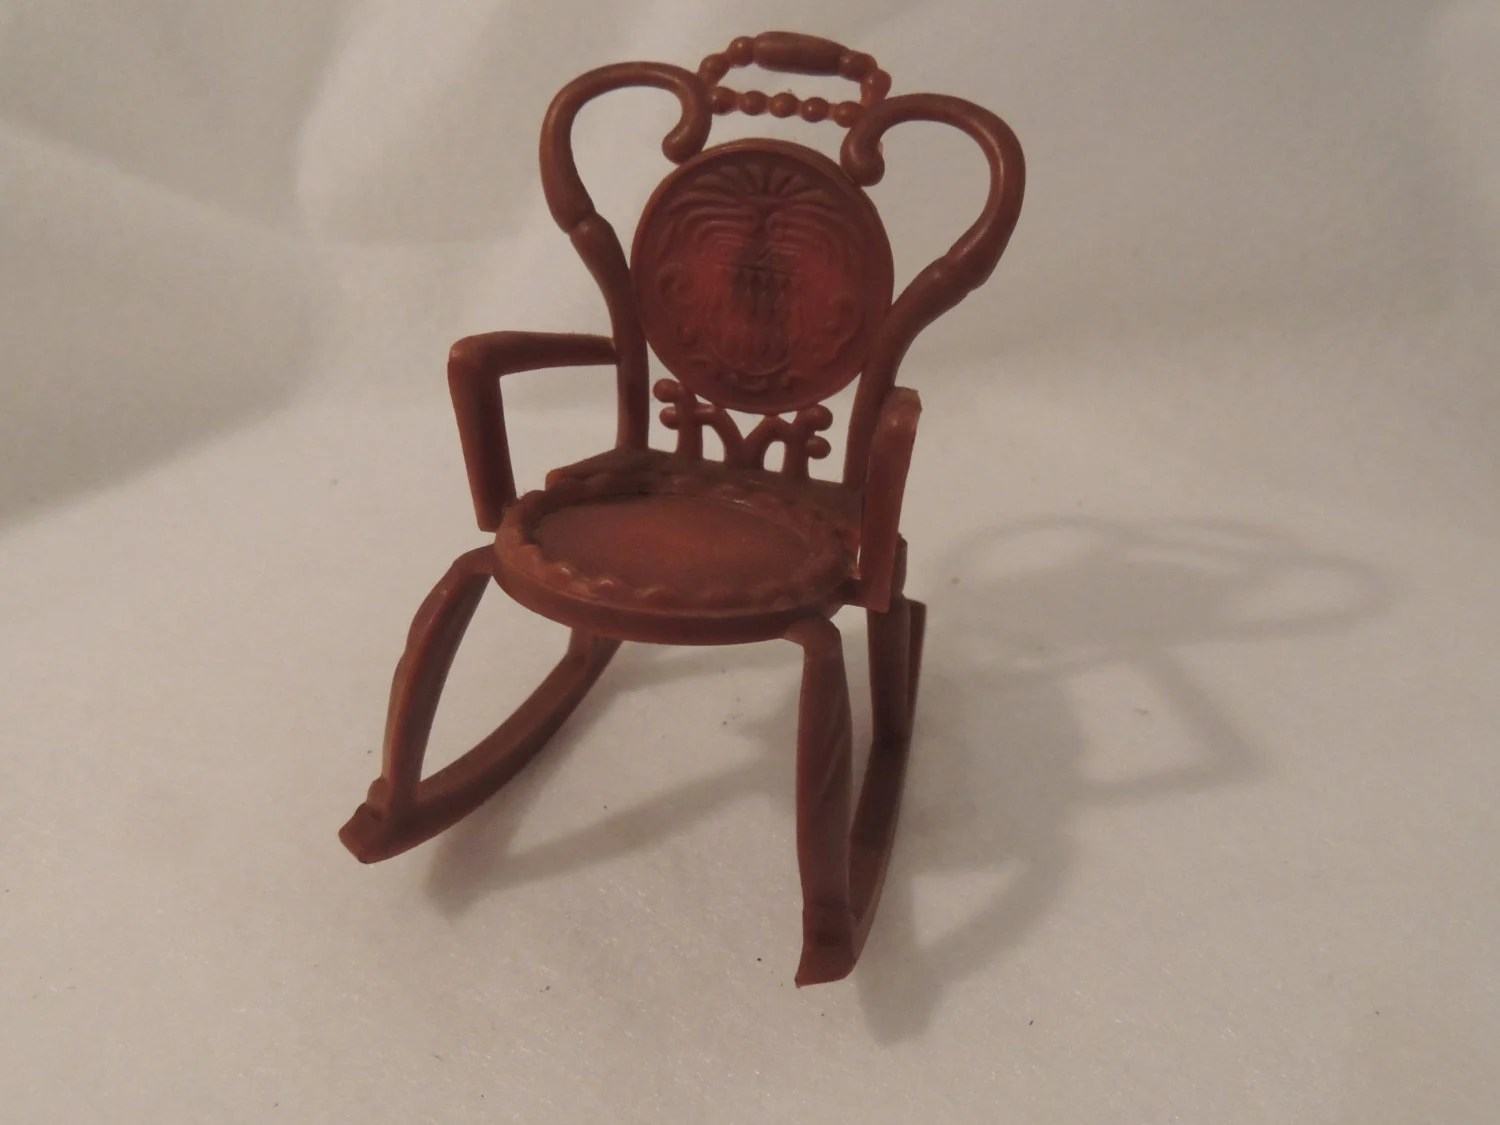 mini rocking chair covers for headrest dollhouse fairy garden vintage miniature rocker